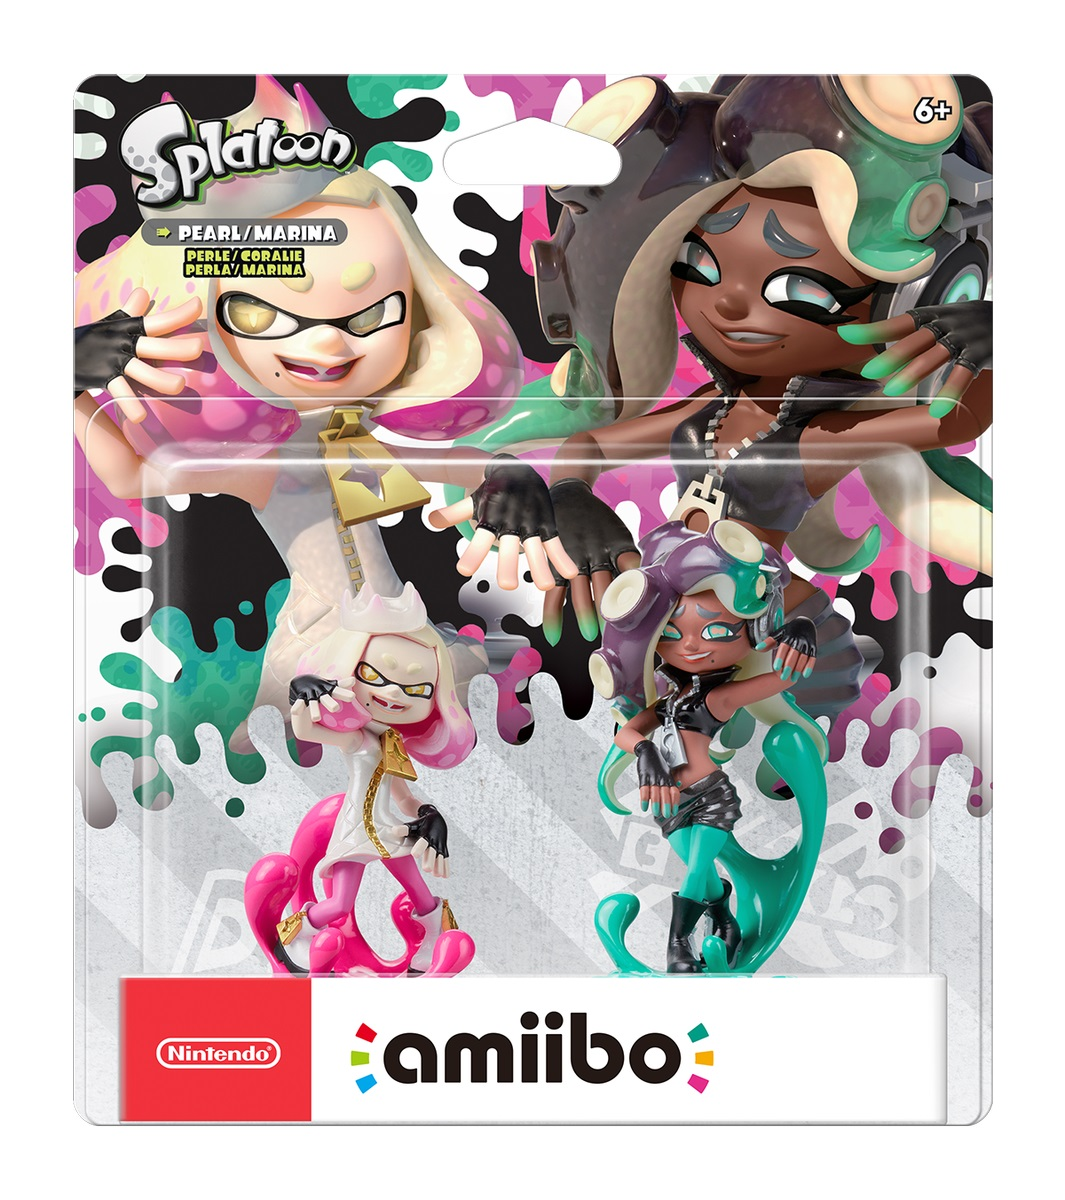 Next Weeks New Splatoon 2 Pearl And Marina Amiibo Perks Revealed Nintendo Switch Red Blue Bundle 2games 2amiibo The Outfits They Unlock